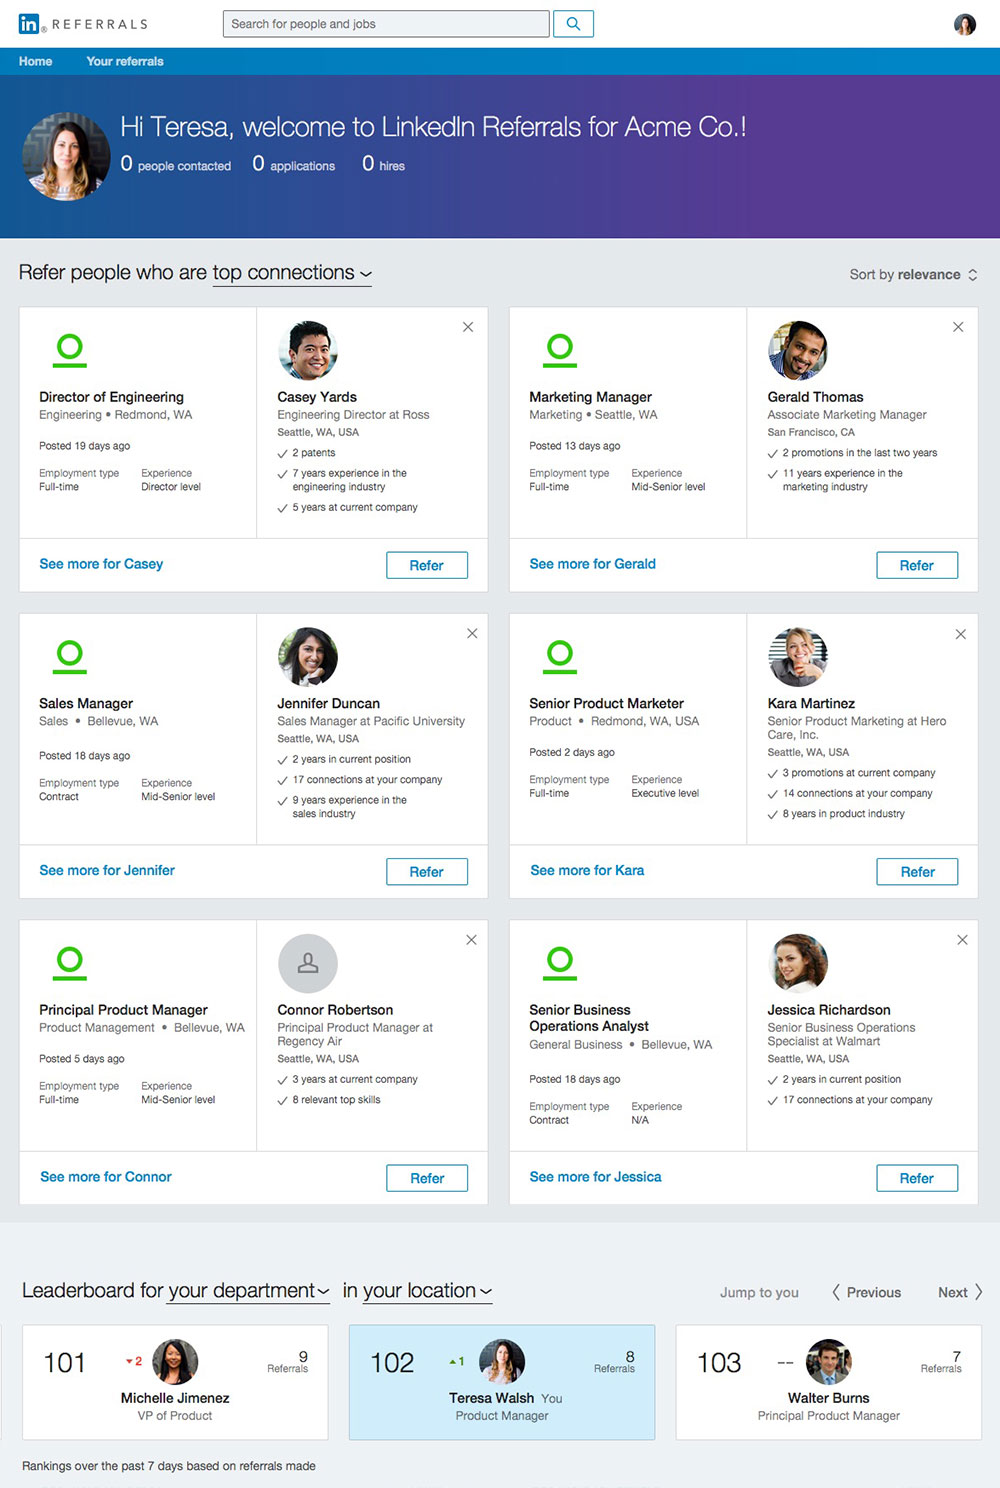 LinkedIn Referrals